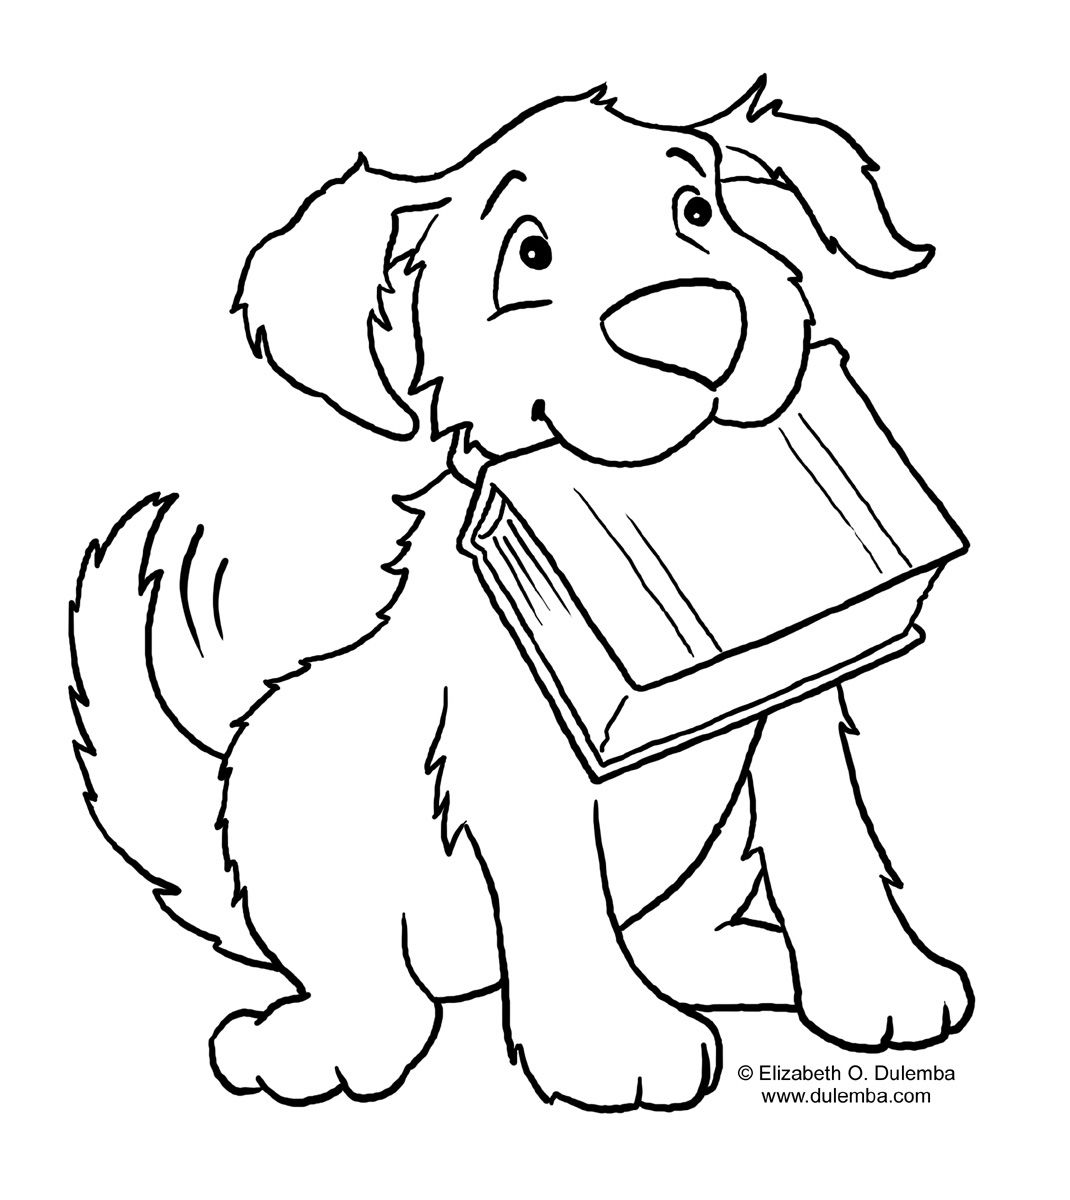 Online kids coloring book - Dogs Printable Coloring Pages For Kids Find On Coloring Book Of Coloring Pages